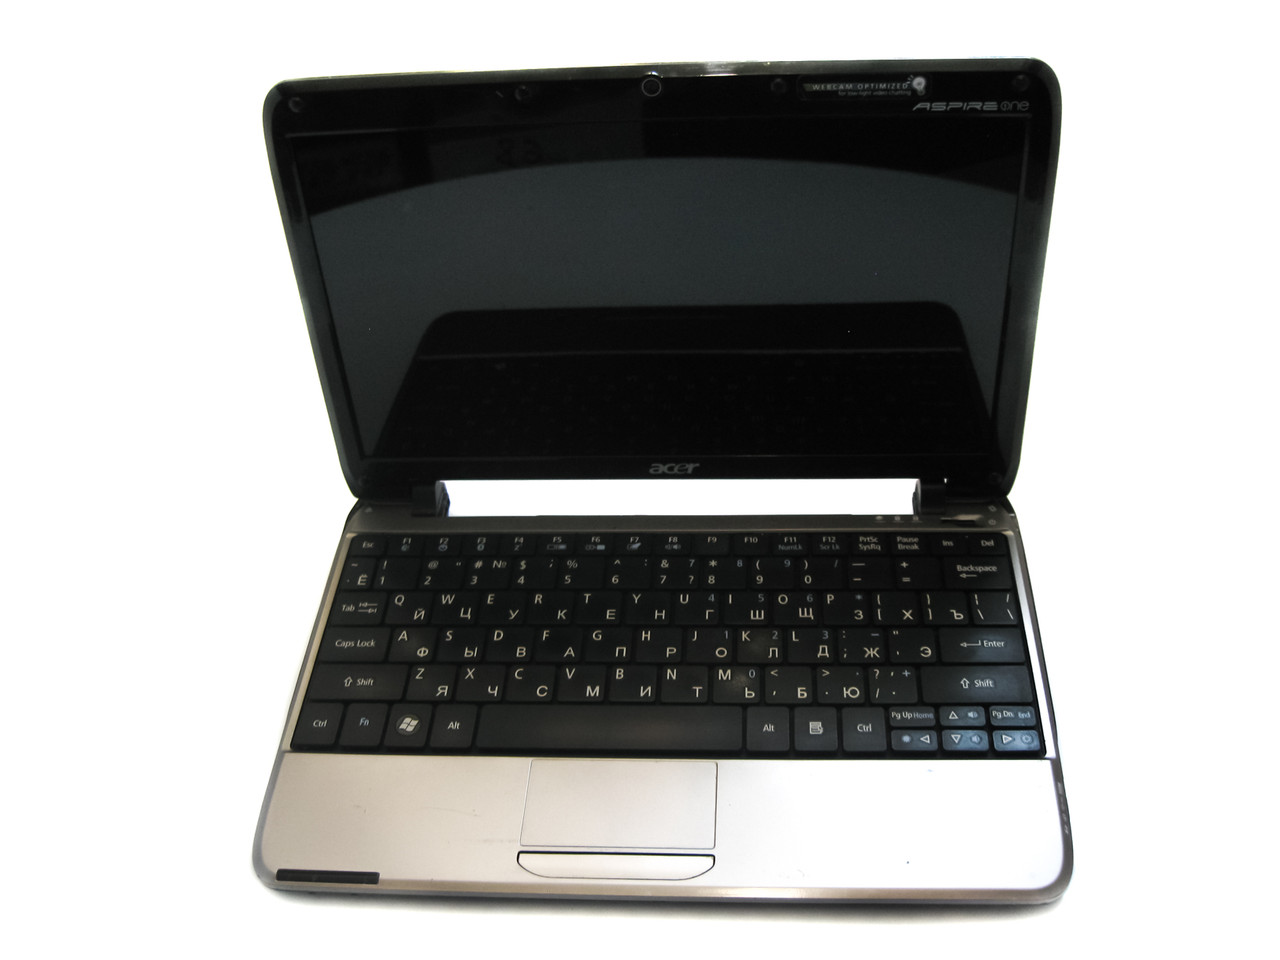 Нетбук Acer Aspire One 751 11.6 (1366x768) / Intel Atom Z520 (1x1.33GH